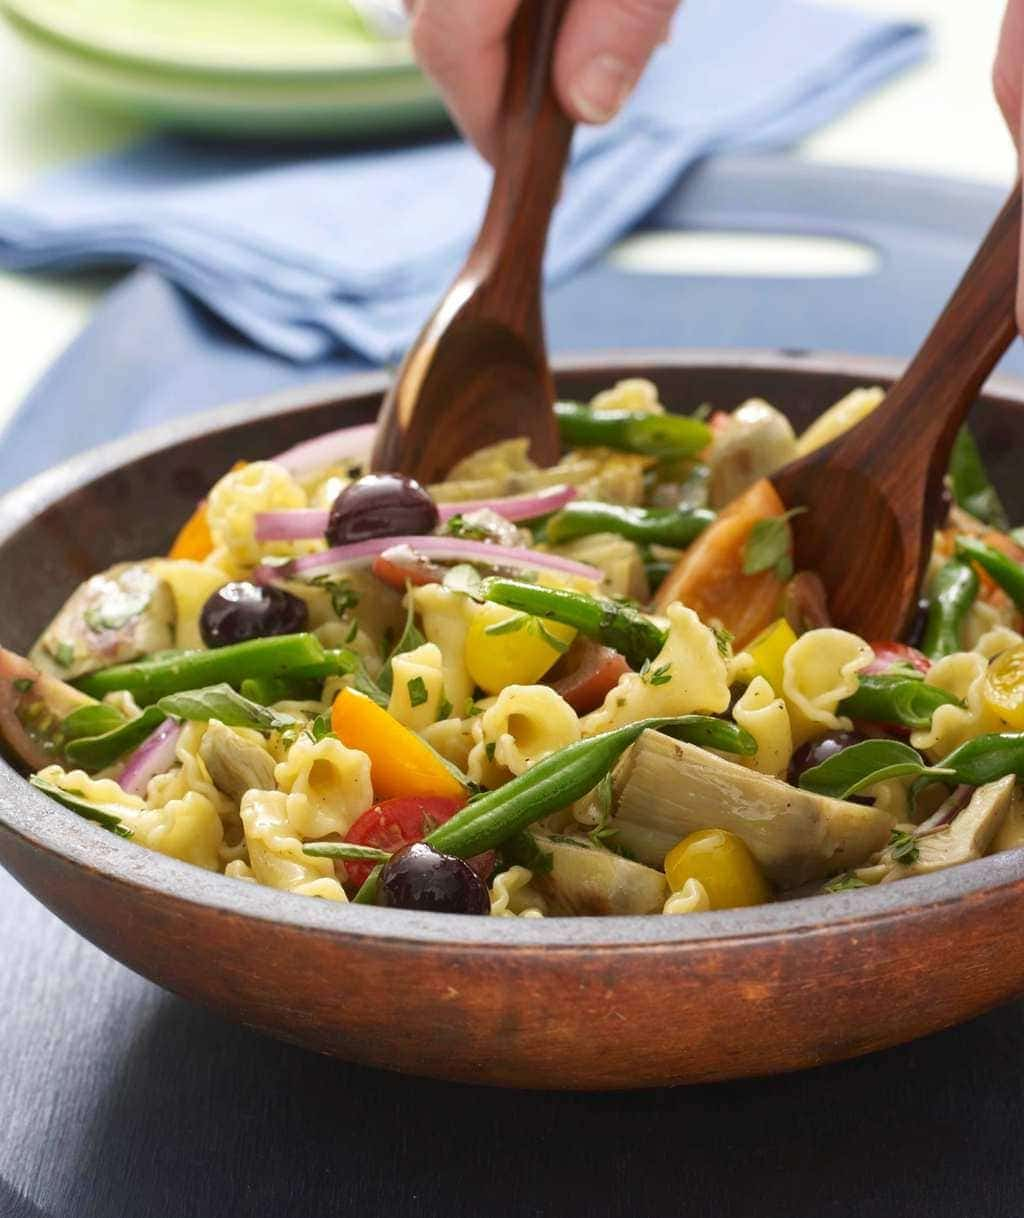 Herbed Vegetable Pasta with Artichokes in a wood bowl